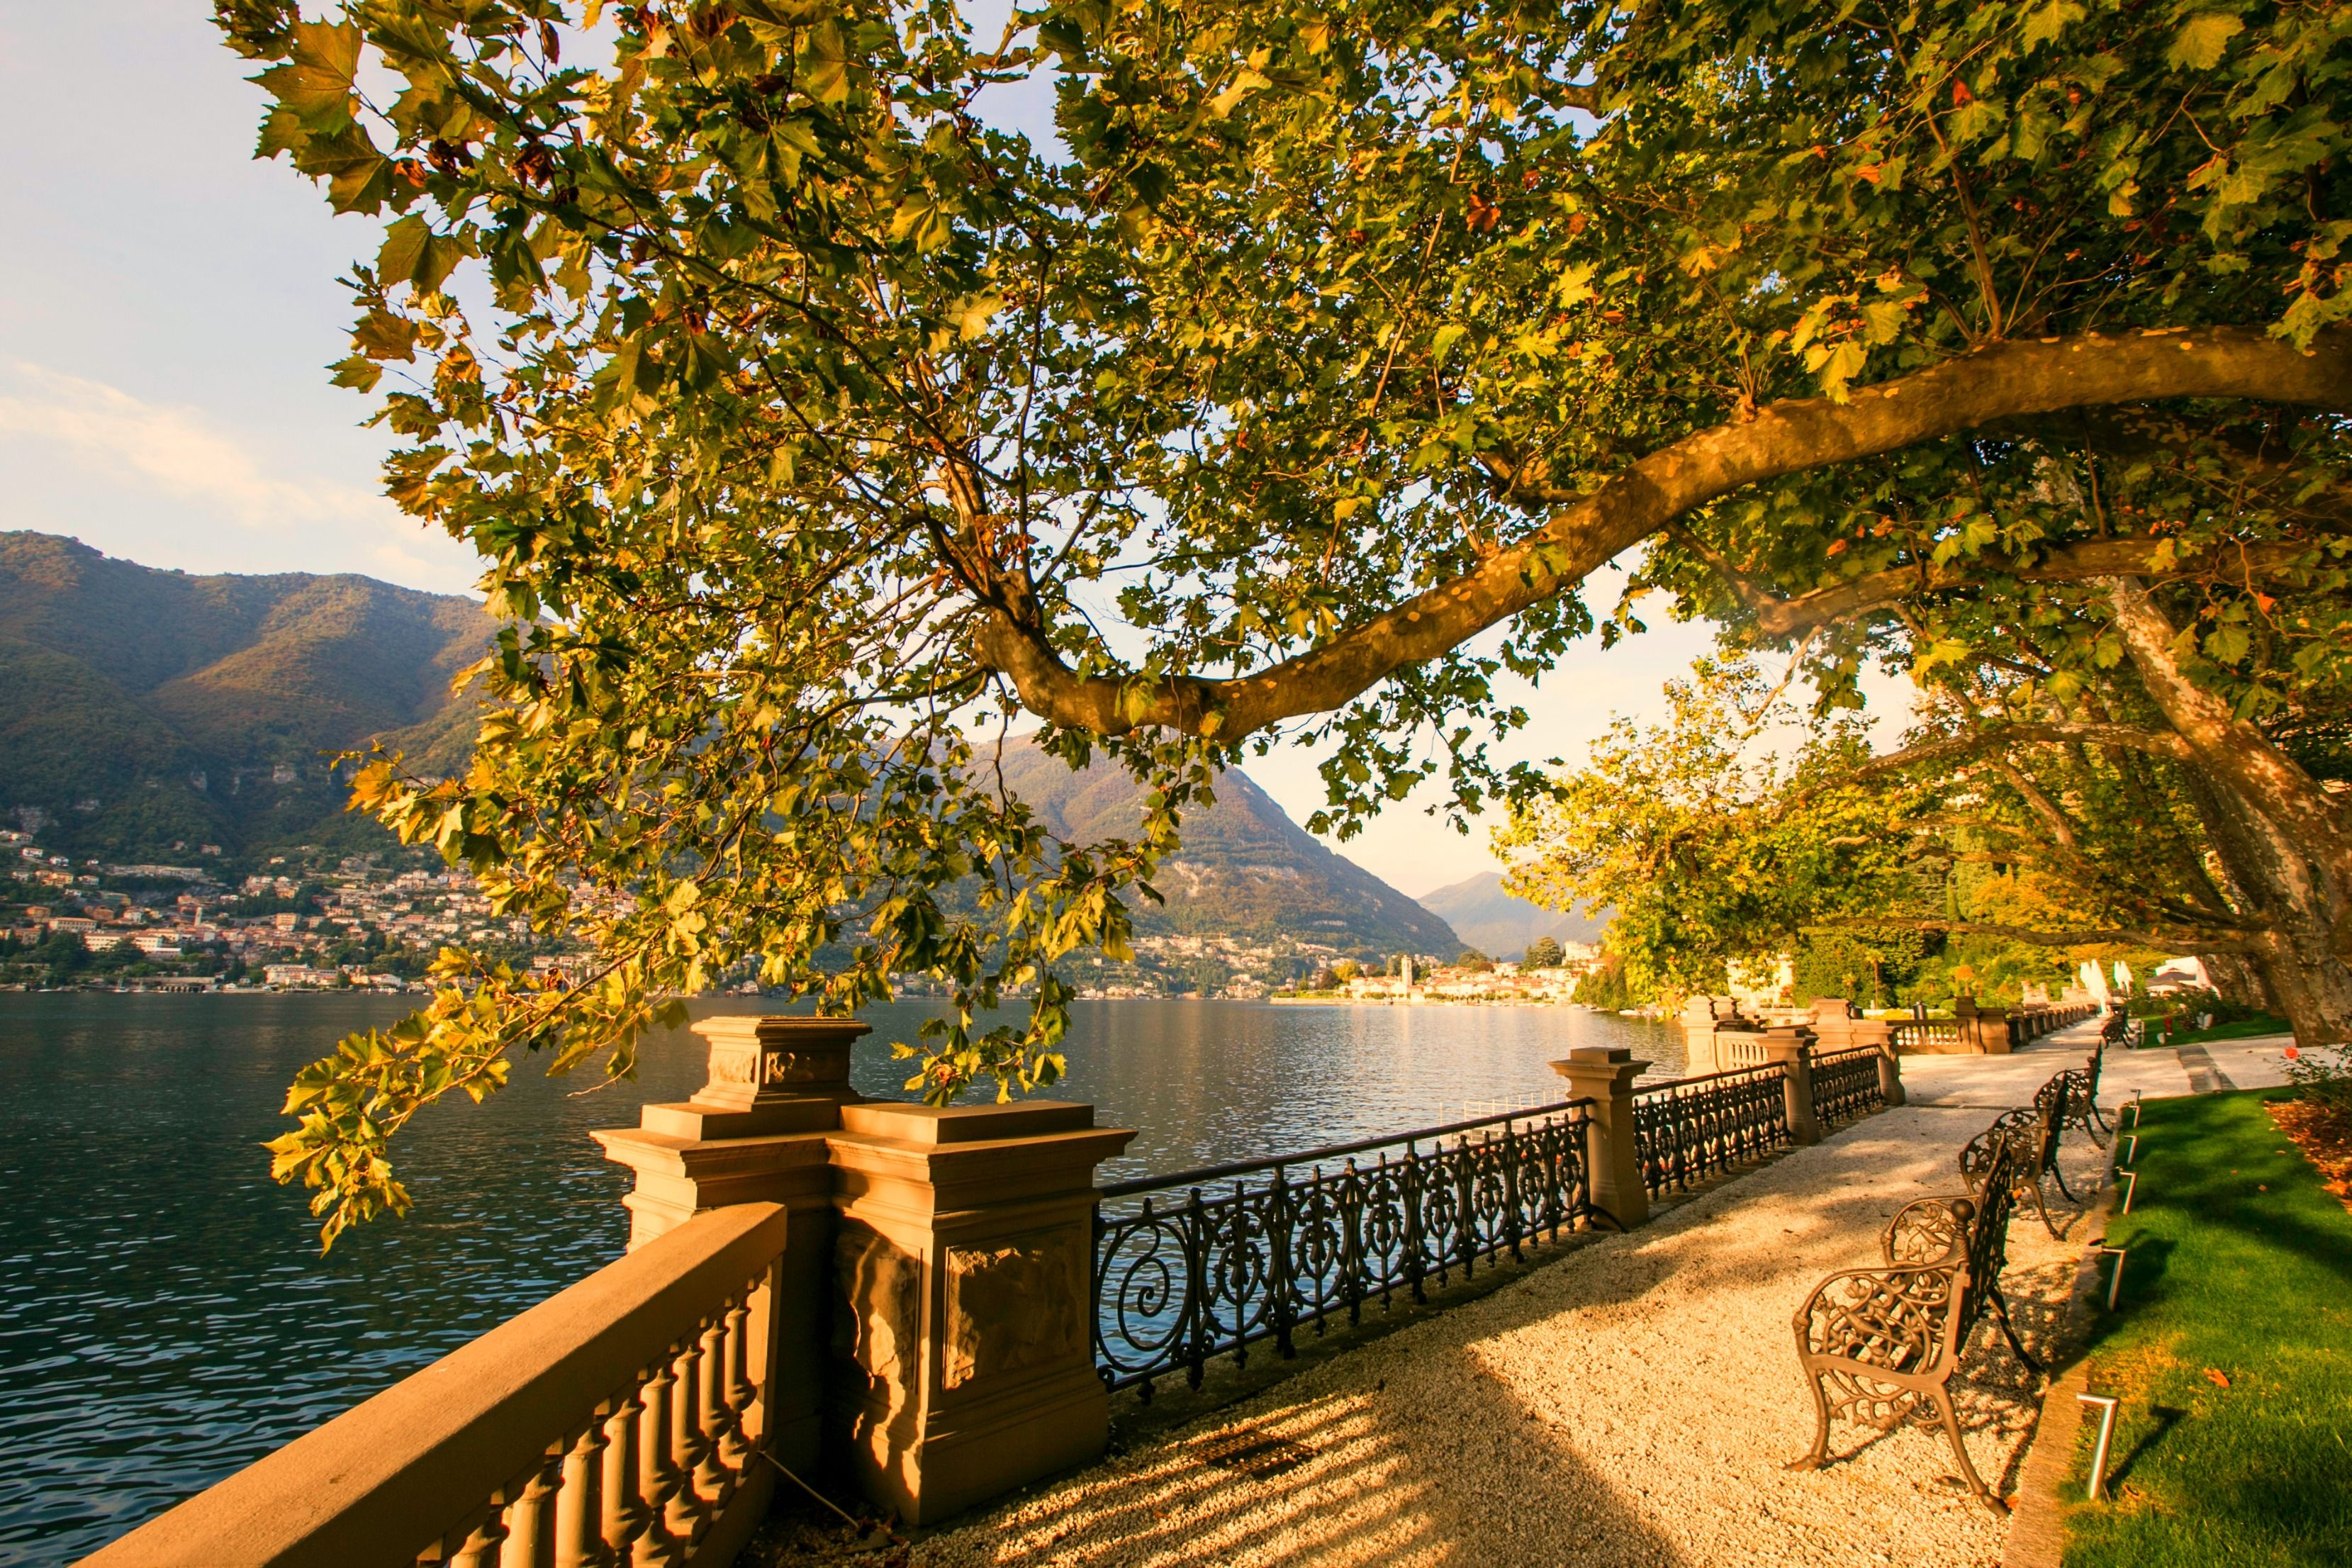 Fall in love with #LakeComo... The magic, the beauty, the romance! www.castadivaresort.com  #StayAtCastaDiva #Resort #Spa #Reopening #March10 #Lake #Como #Italy